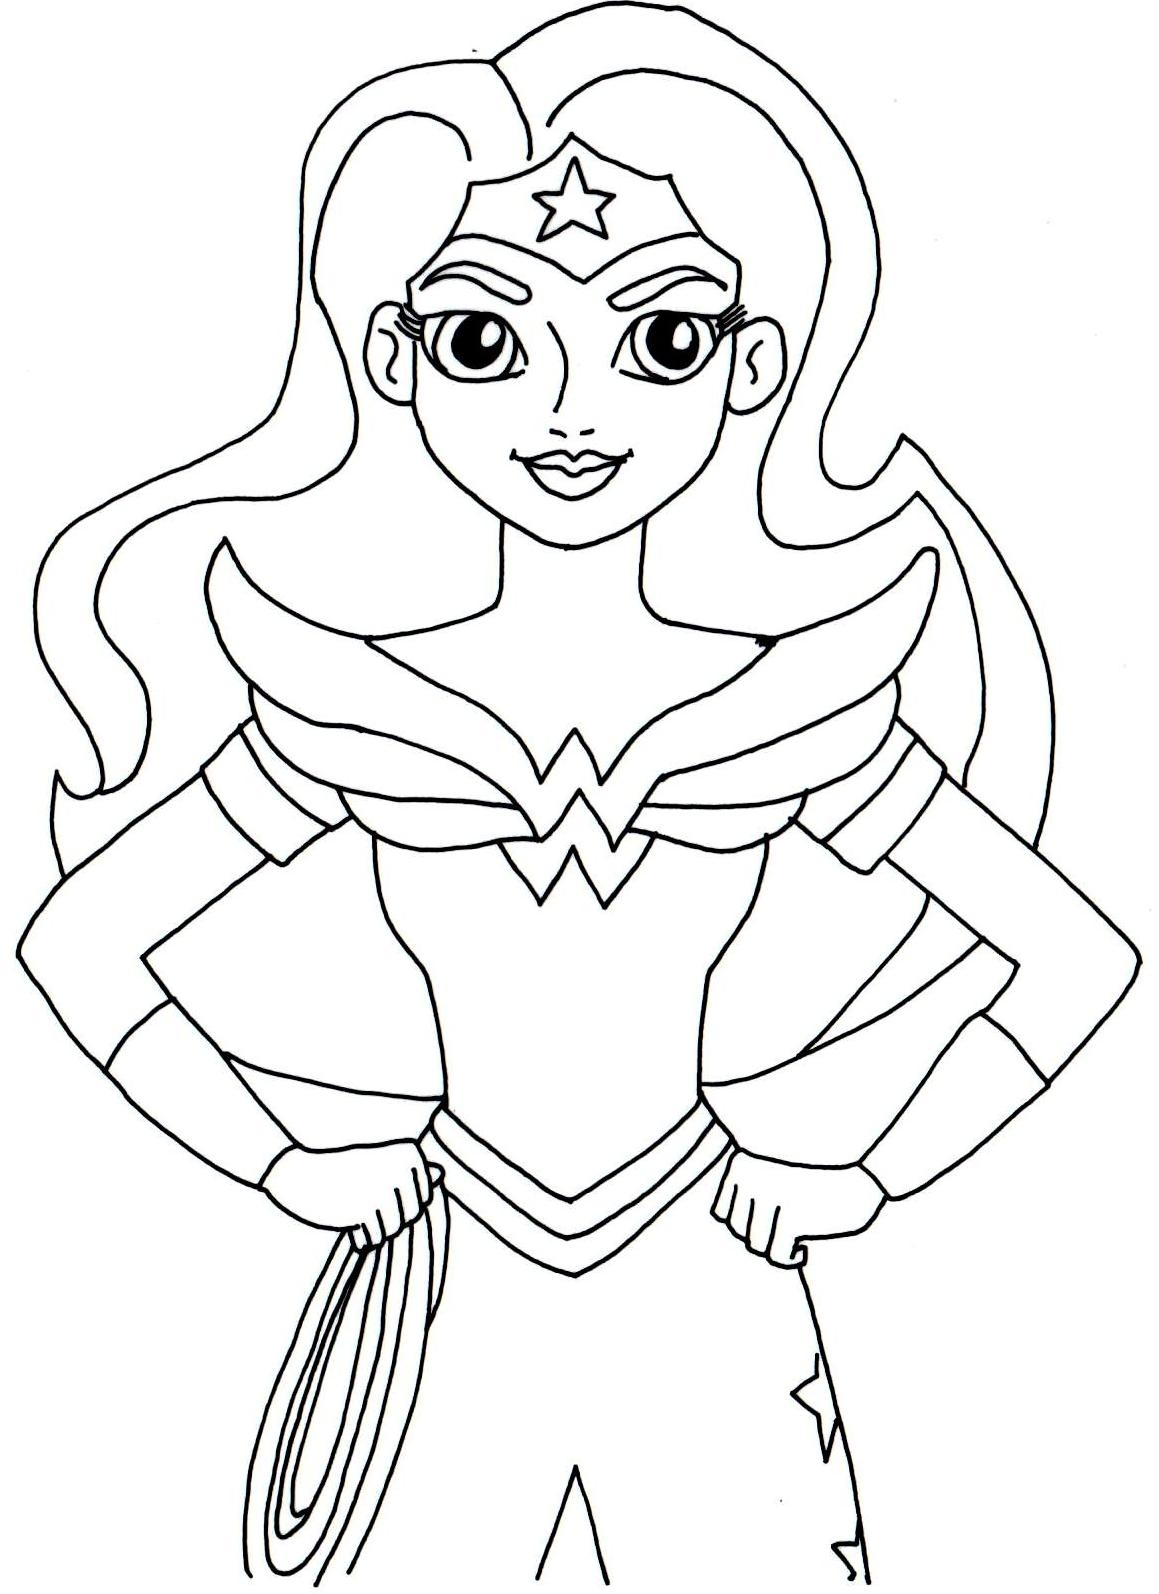 wonder woman coloring pages - wonder woman coloring pages